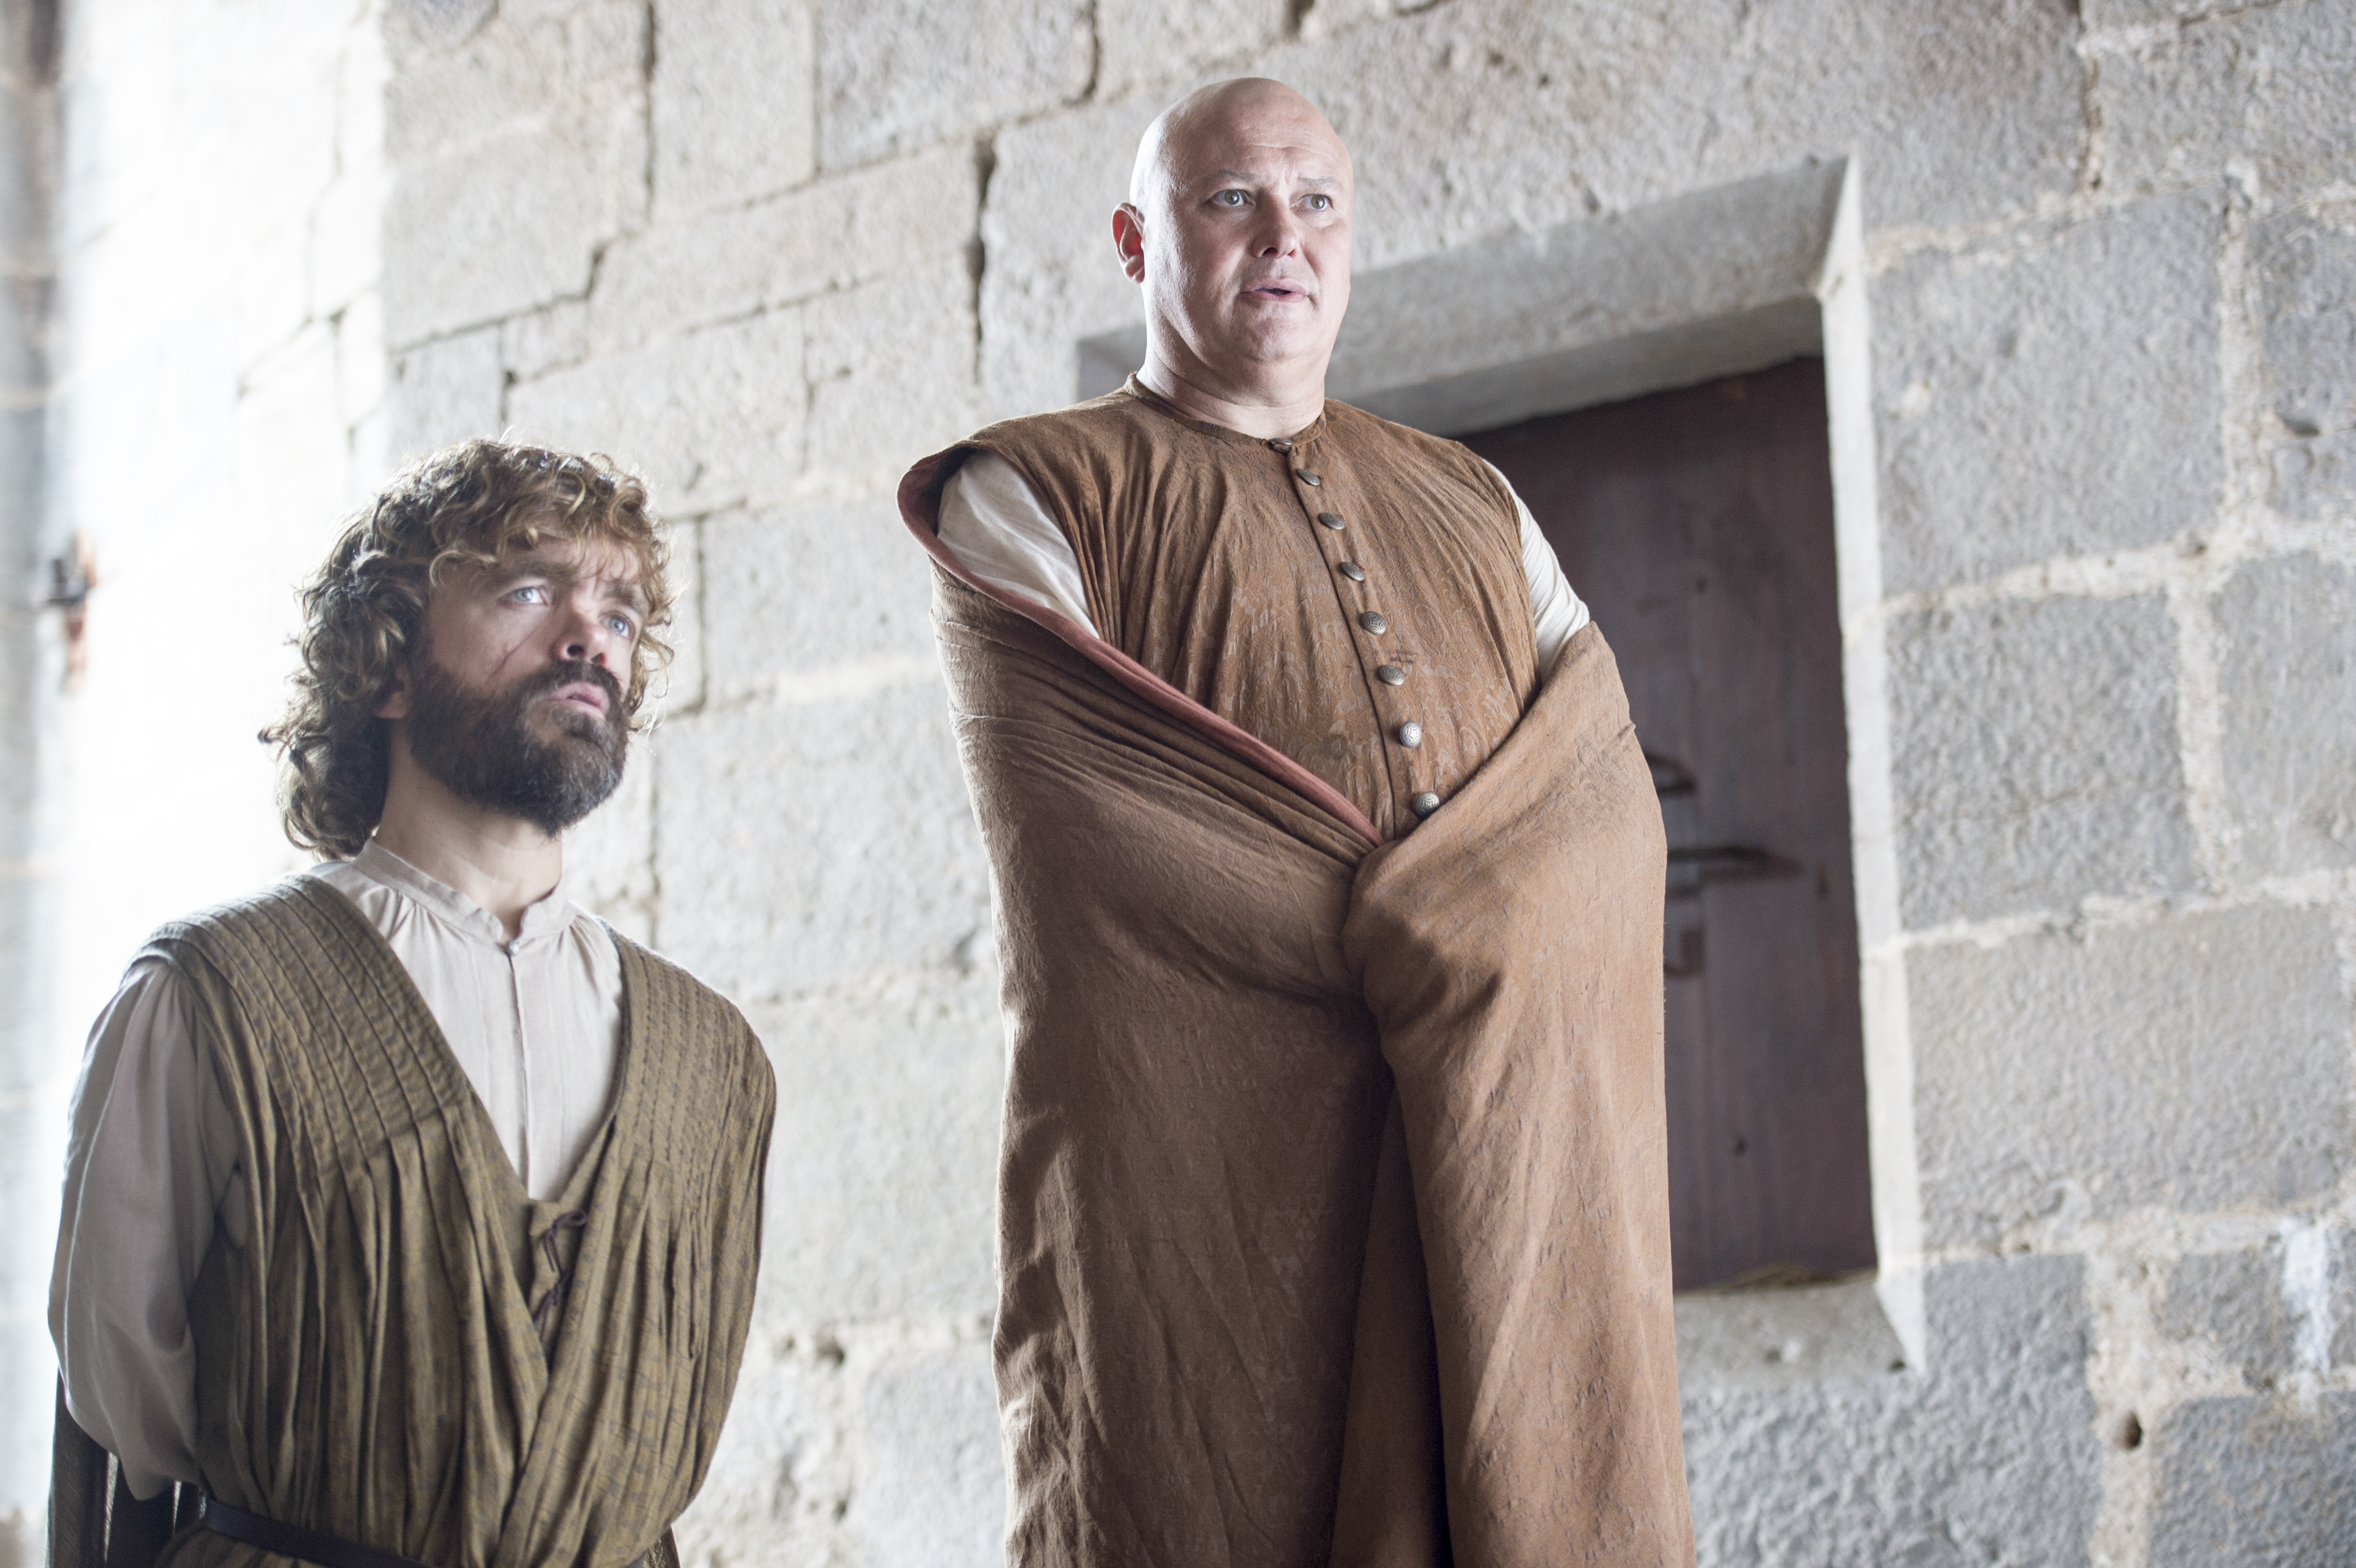 Peter Dinklage as Tyrion Lannister and Conleth Hill as Varys. Photo by Macall B.Polay/HBO